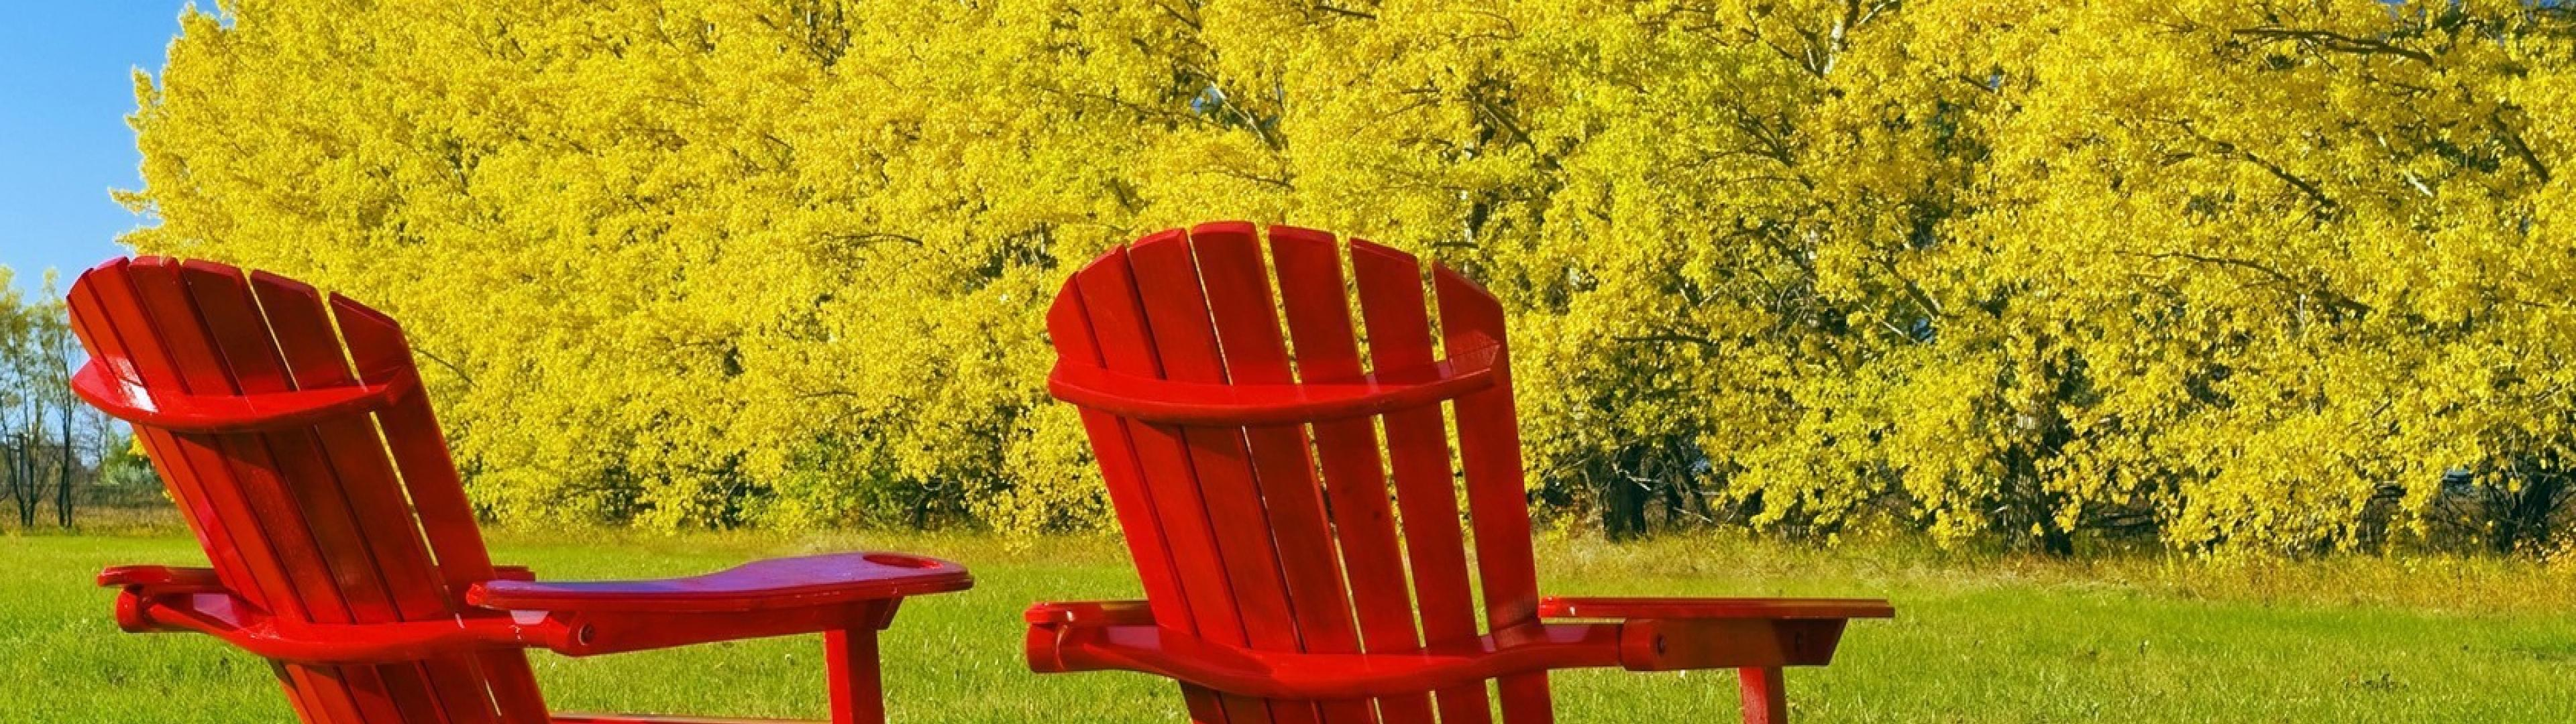 chairs_autumn_red_yellow_green_trees_wood_dual_3840x1080_hd-wallpaper-53935